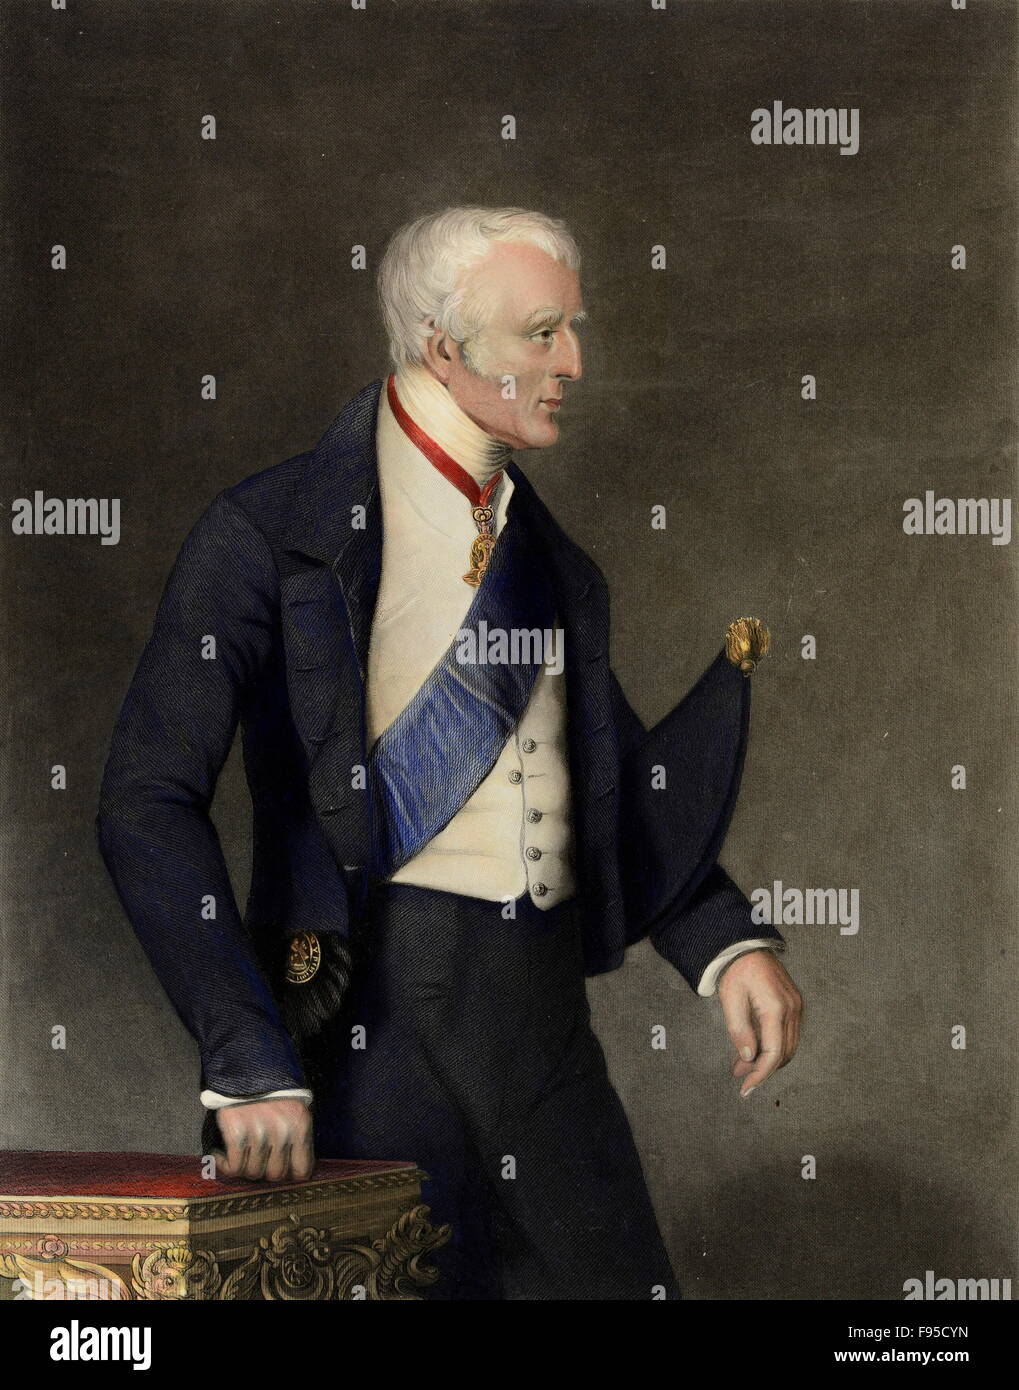 The Duke of Wellington. - Stock Image